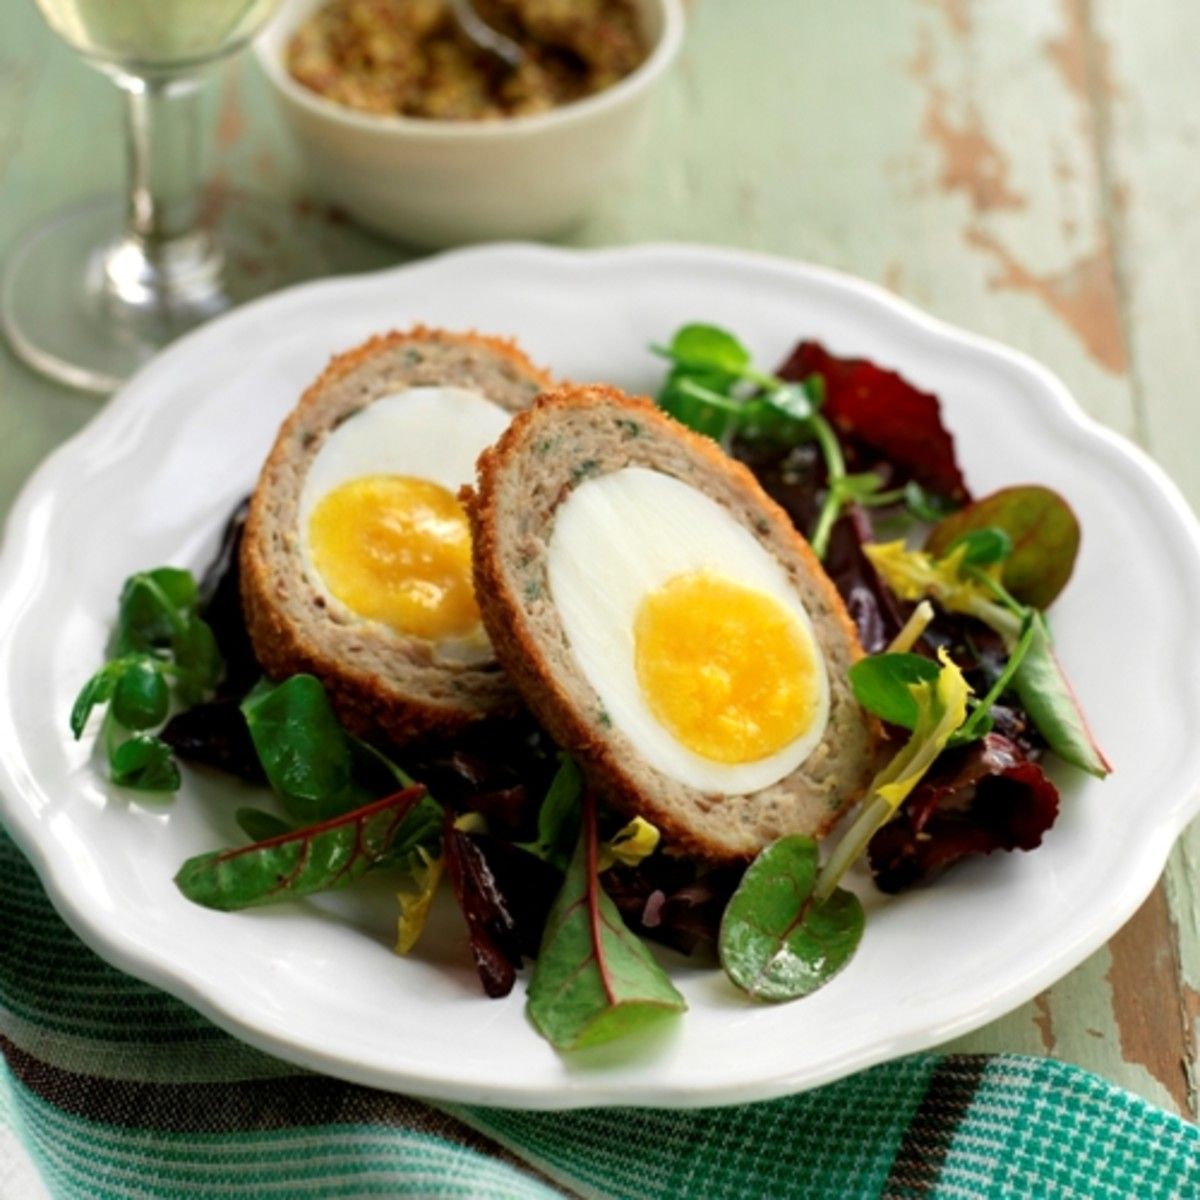 Inside Scotch egg